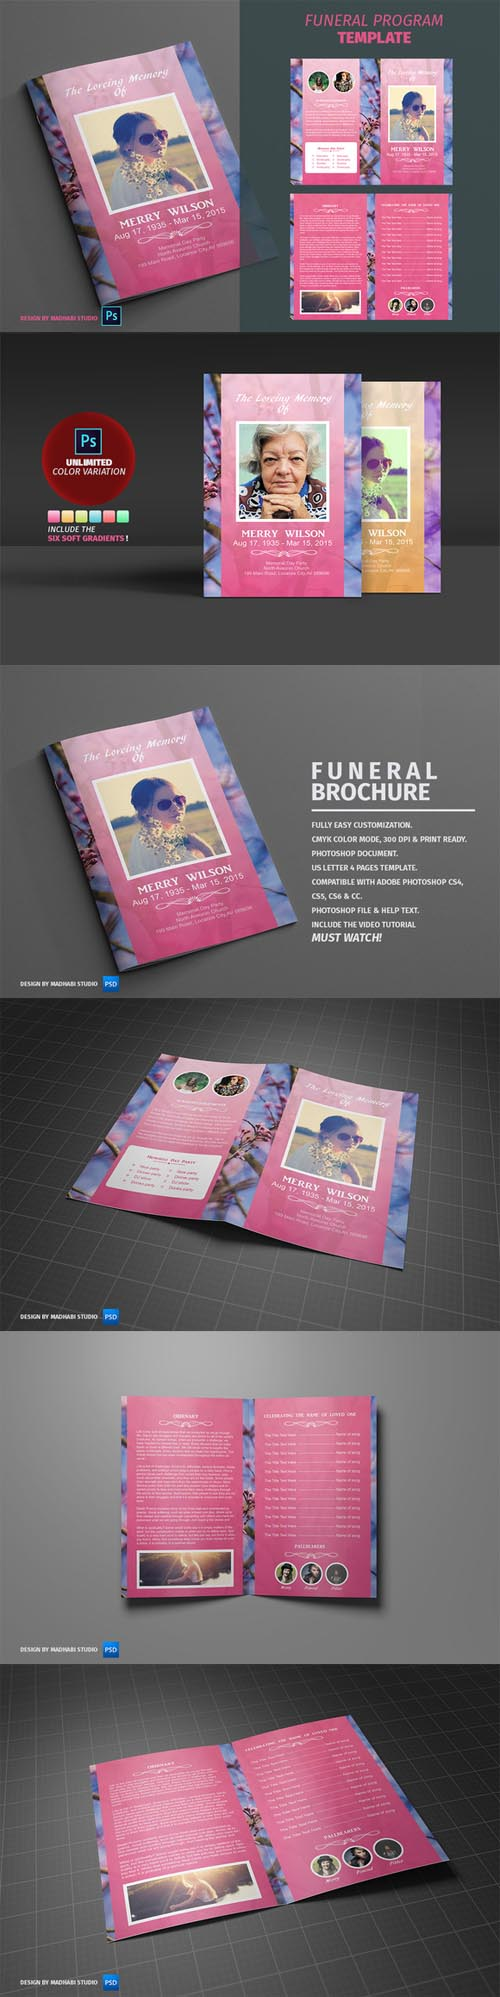 Funeral Program Template vol01